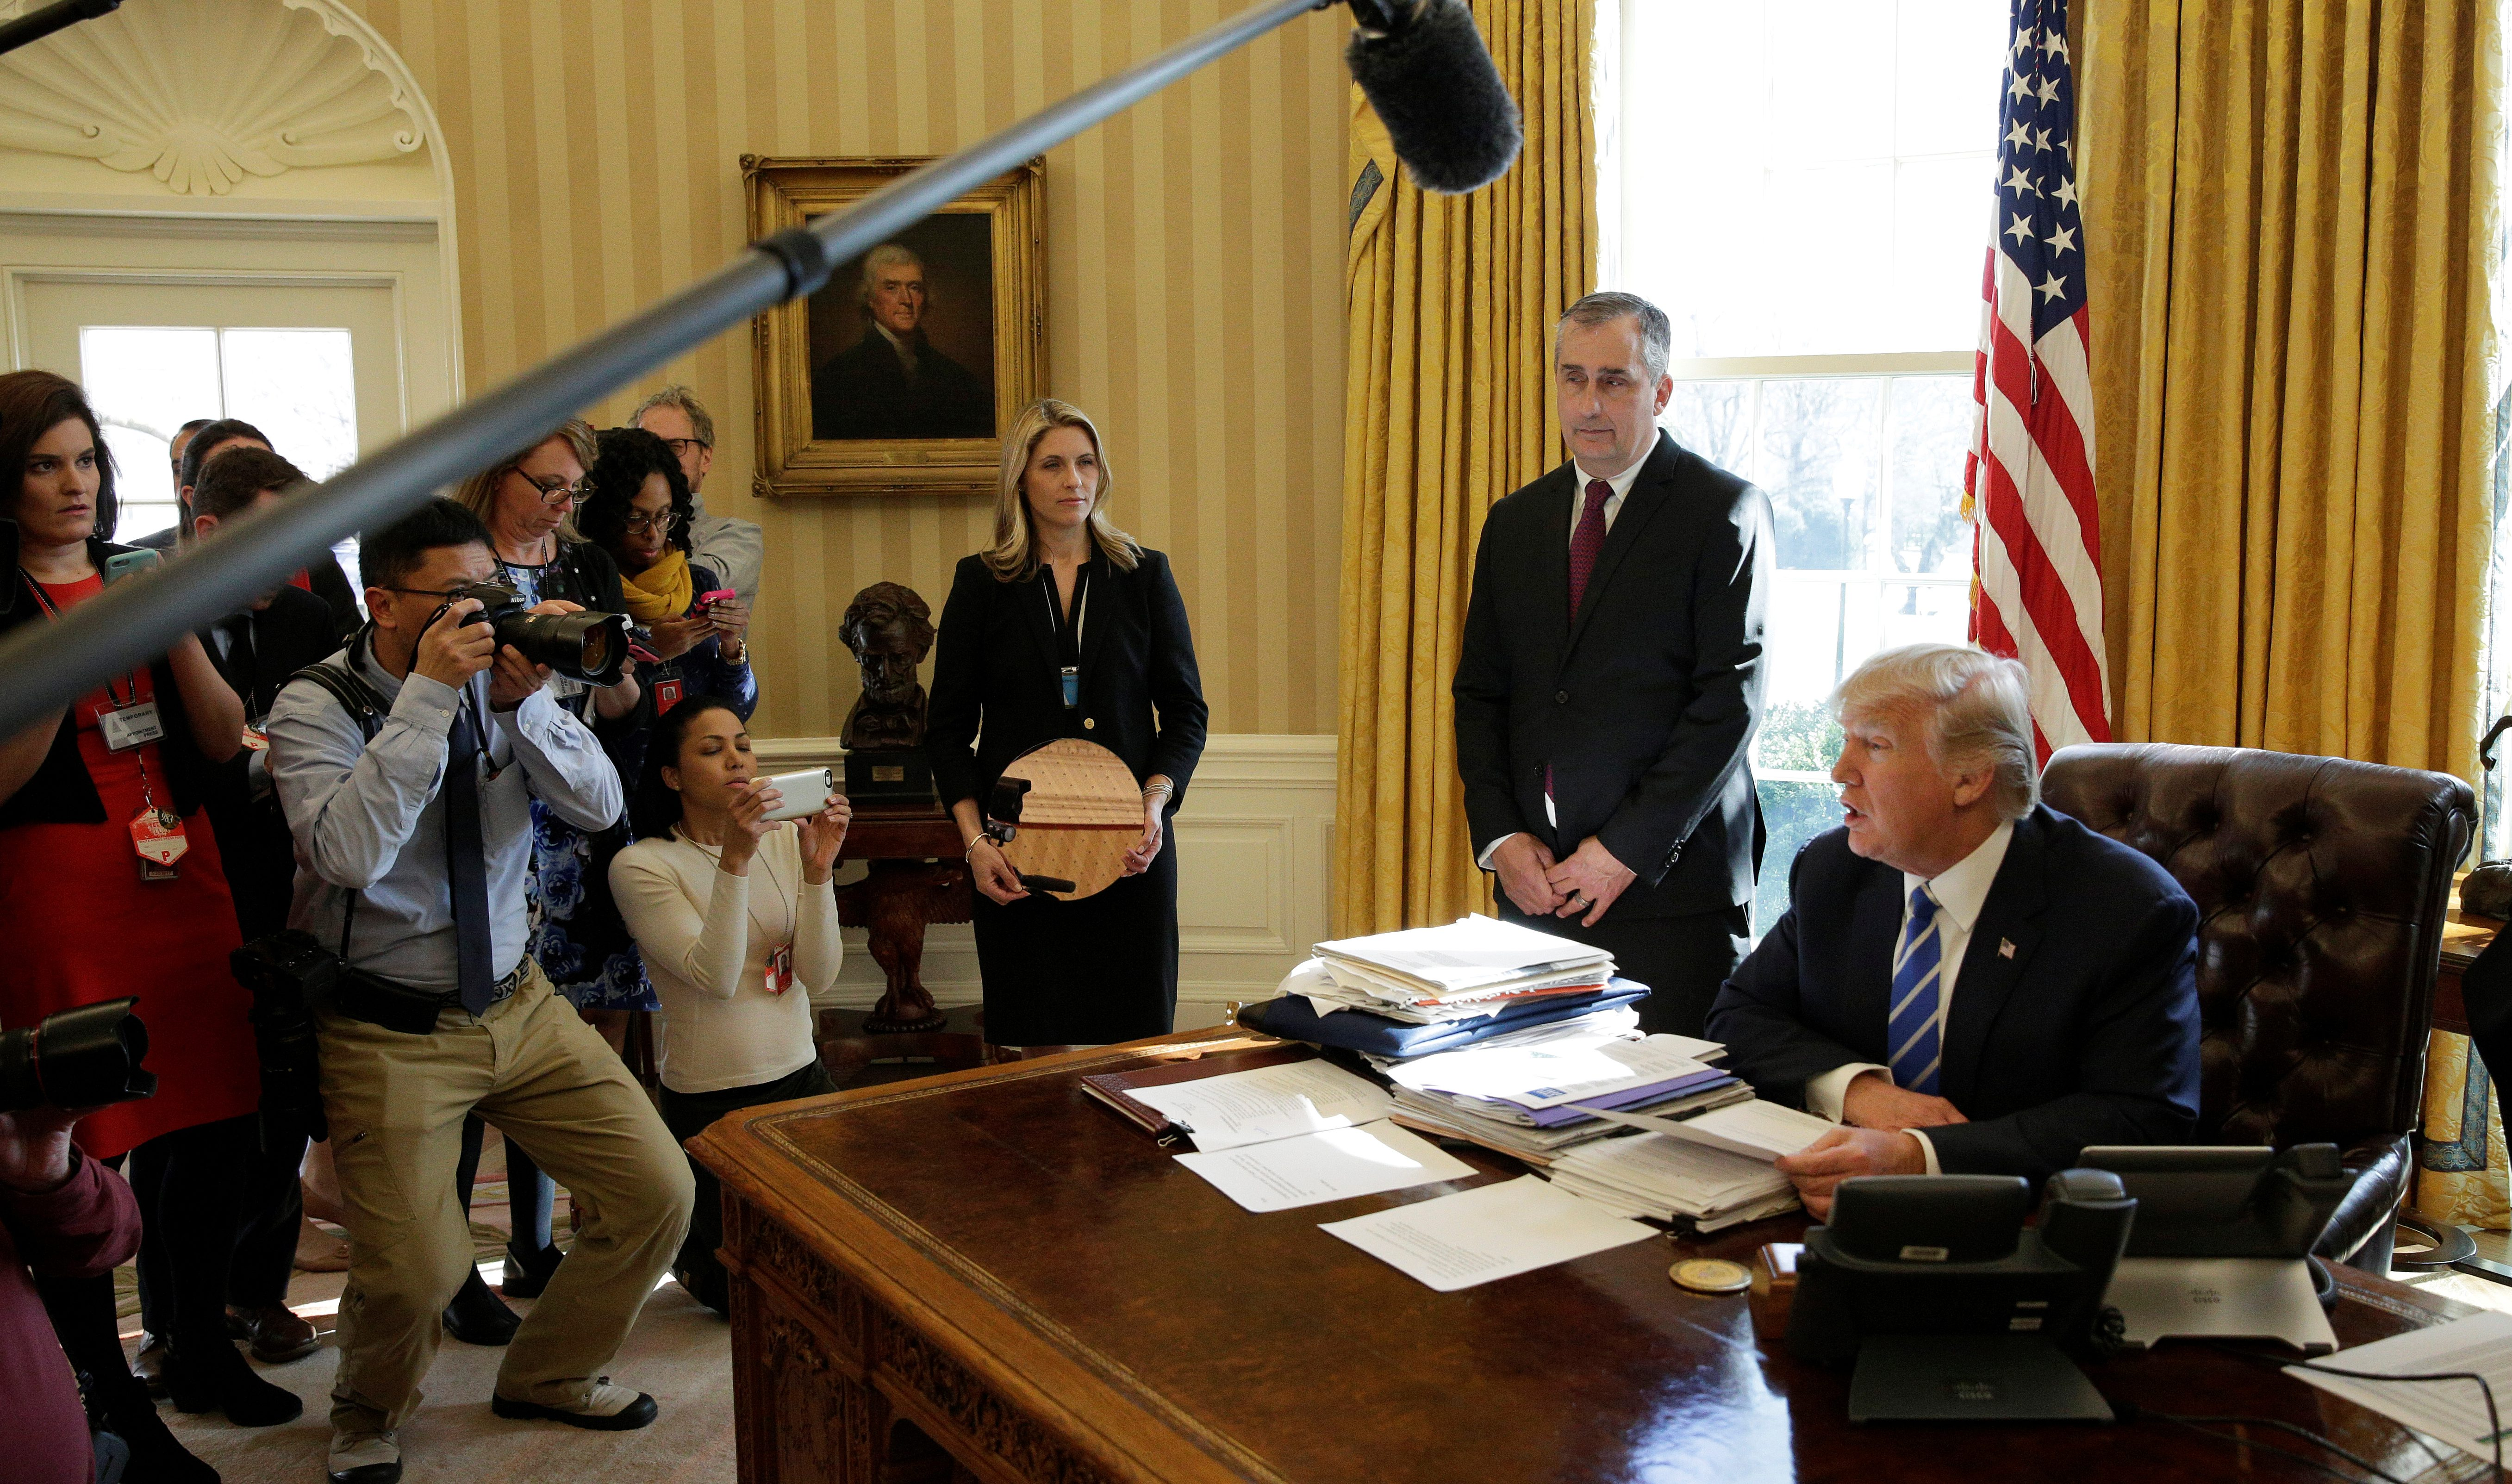 U.S. President Donald Trump meets with Chief Executive Officer of Intel Brian Krzanich in the Oval Office of the White House in Washington, U.S., February 8, 2017.